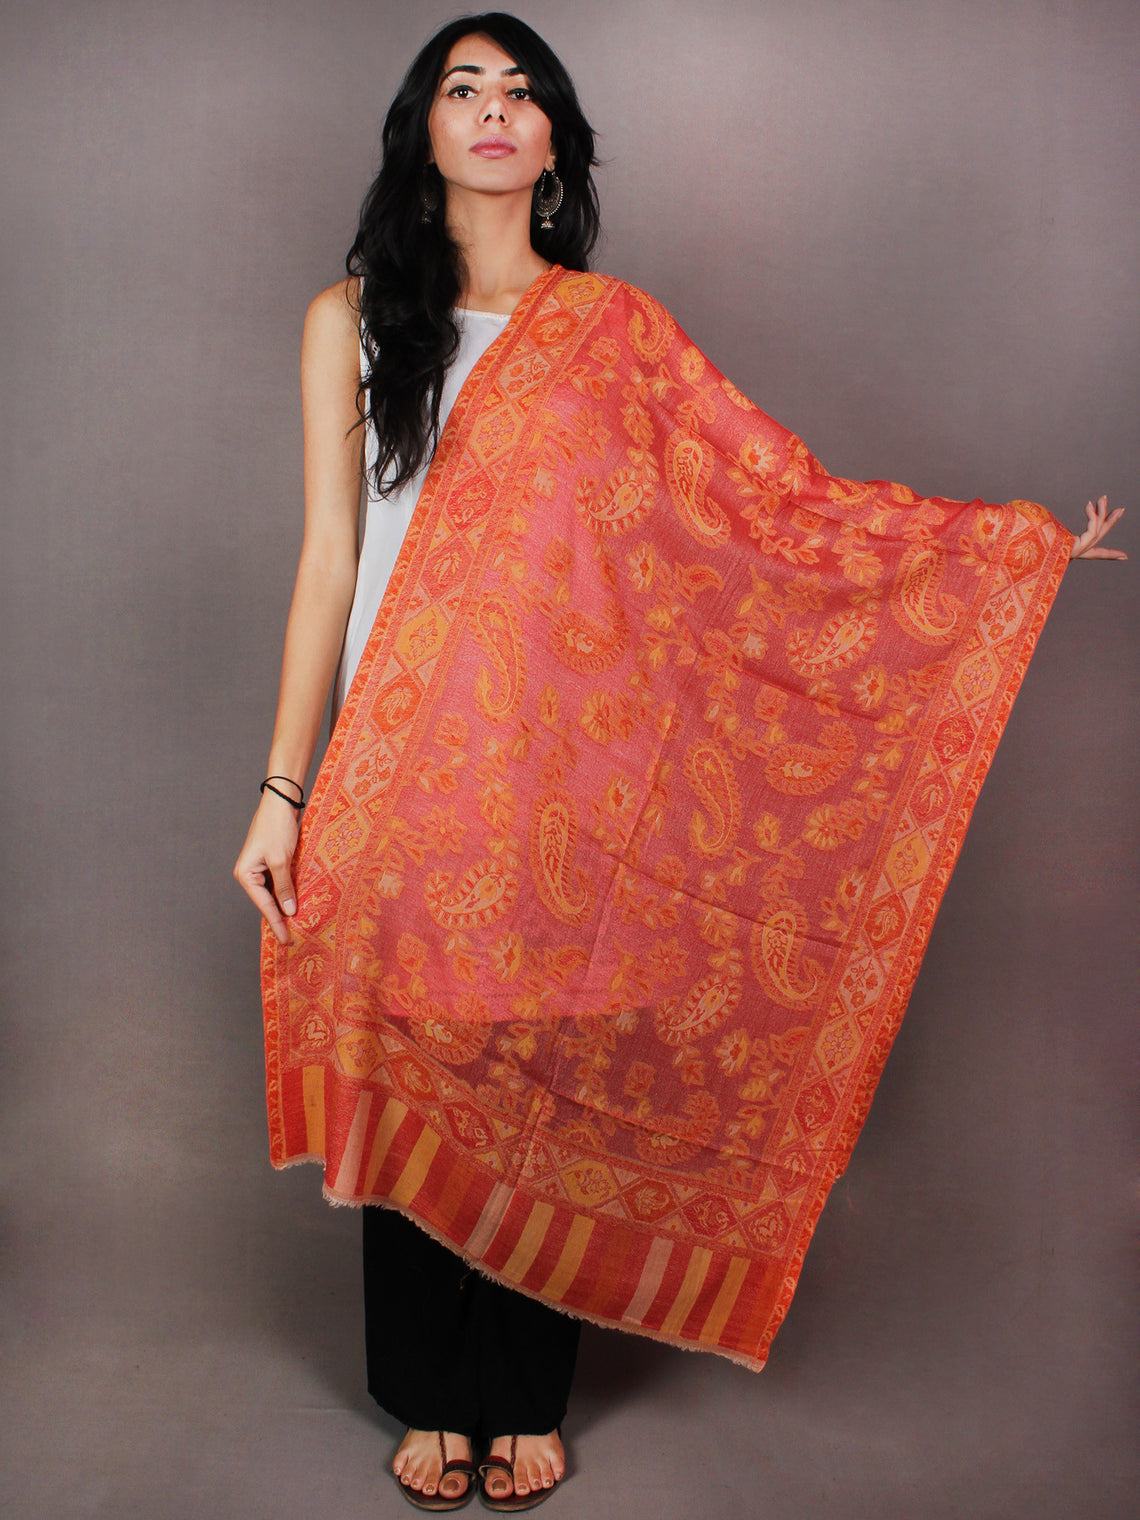 Orange Beige Jamawar Pure Wool Cashmere Stole from Kashmir - S6317108